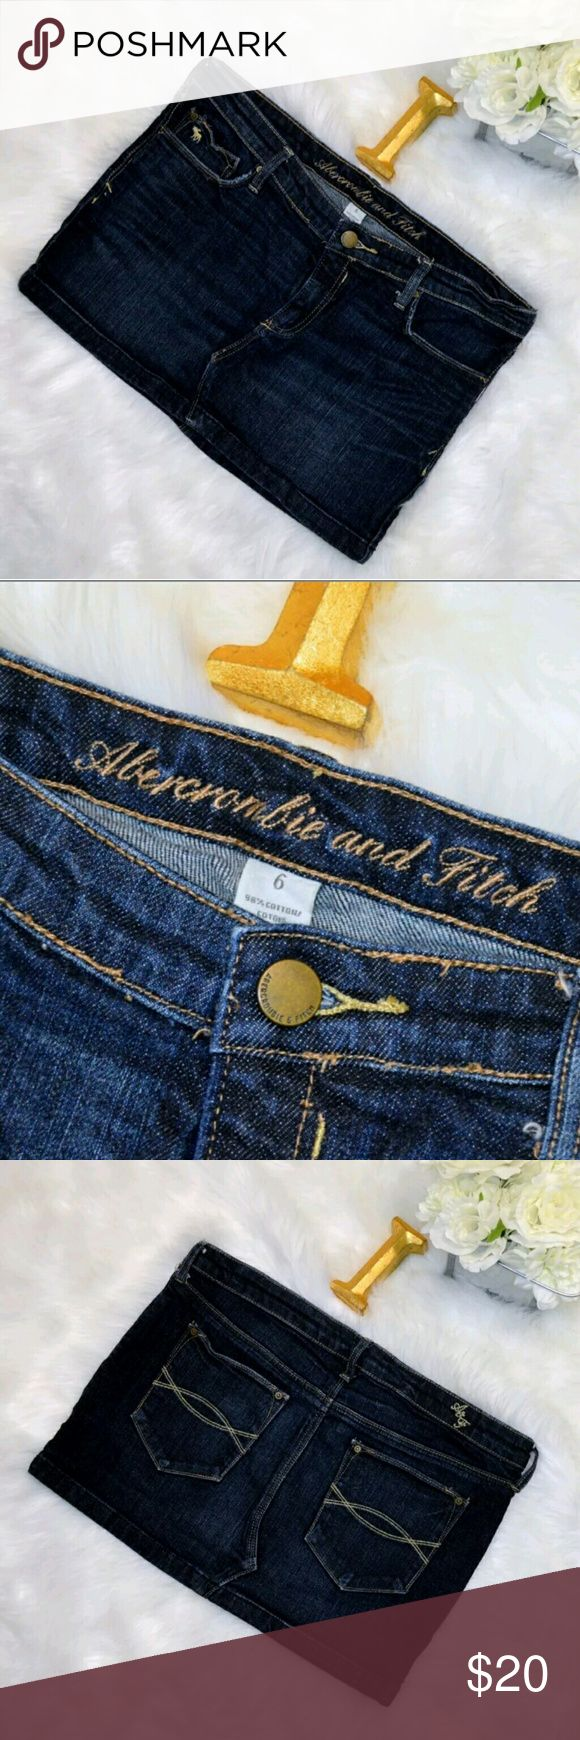 """Abercrombie and Fitch Jean Mini Skirt Size 6 Abercrombie and Fitch Size 6 L Jean Mini Skirt Dark Blue Wash Distressed Pockets Materials 98% Cotton, 2% Elastane Measurements ALL MEASUREMENTS TAKEN WHILE LAID FLAT Bottom hem: 17"""" Skirt Length from waist seam: 11"""" Waist: 16"""" ?No flaws? ?Offers are welcome? ?Will ship T-T-S After i ship the item I NO LONGER HAVE CONTROL of the time USPS takes to scan the packages, or If there are ANY DELAYS, LOST, OR LEFT AT PORCH items. Please be understanding…"""